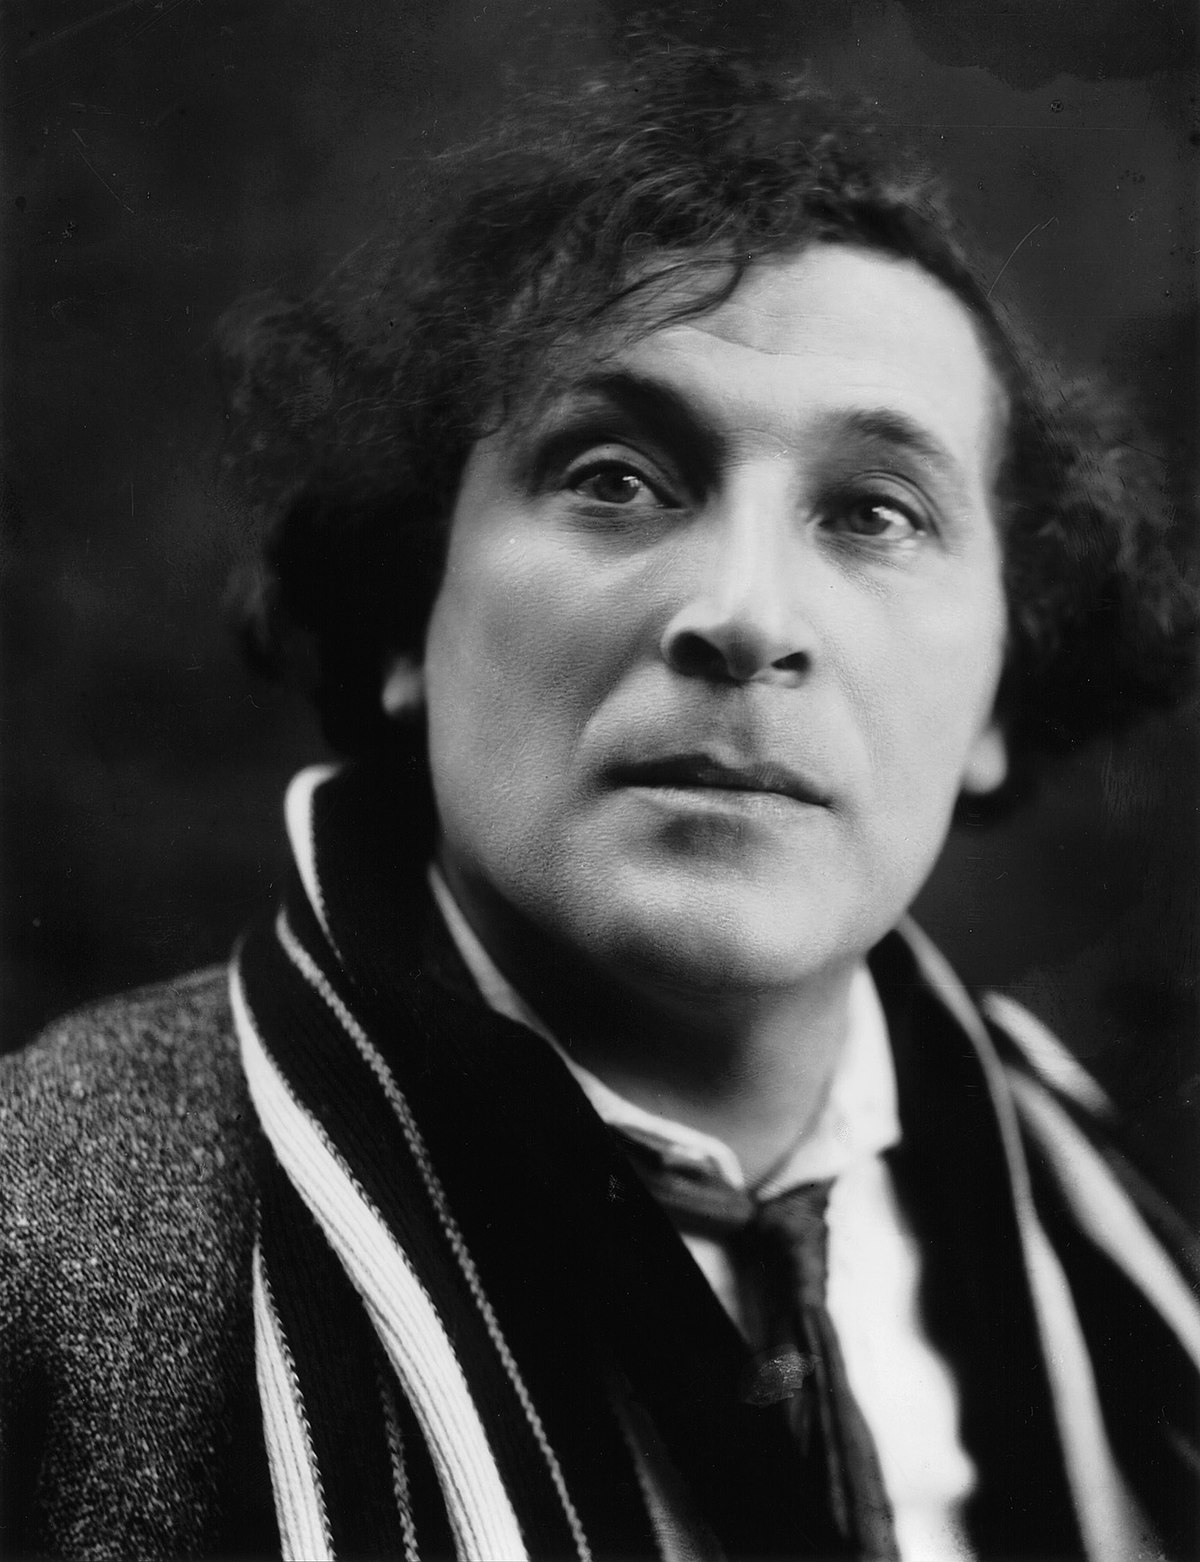 marc chagall happy birthday : marc chagall history :  marc-chagall-str. 49 mainz en 2020/2021